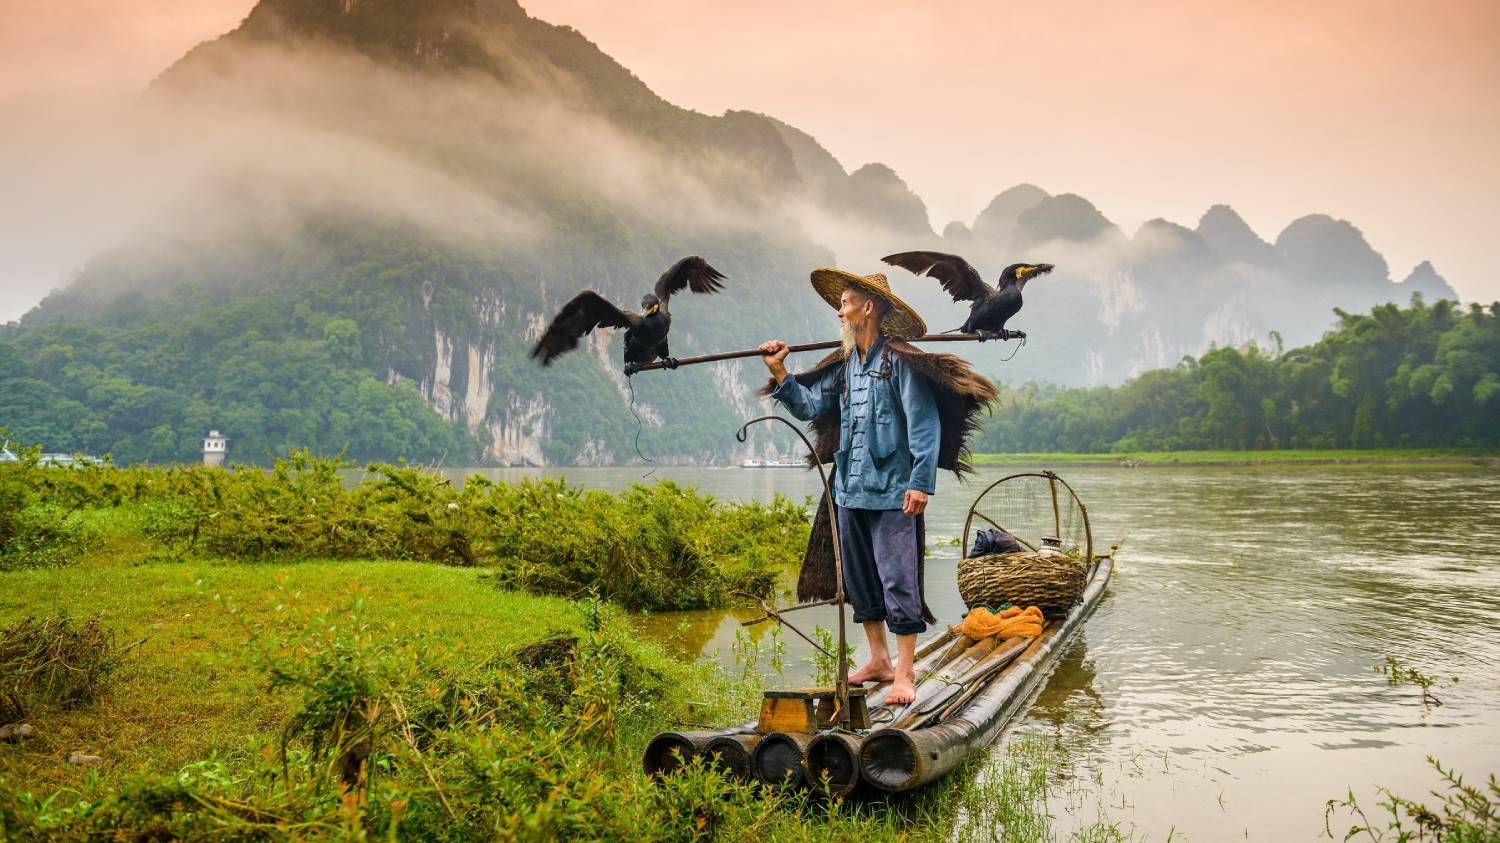 Yangshuo - The Best Places To Visit In China